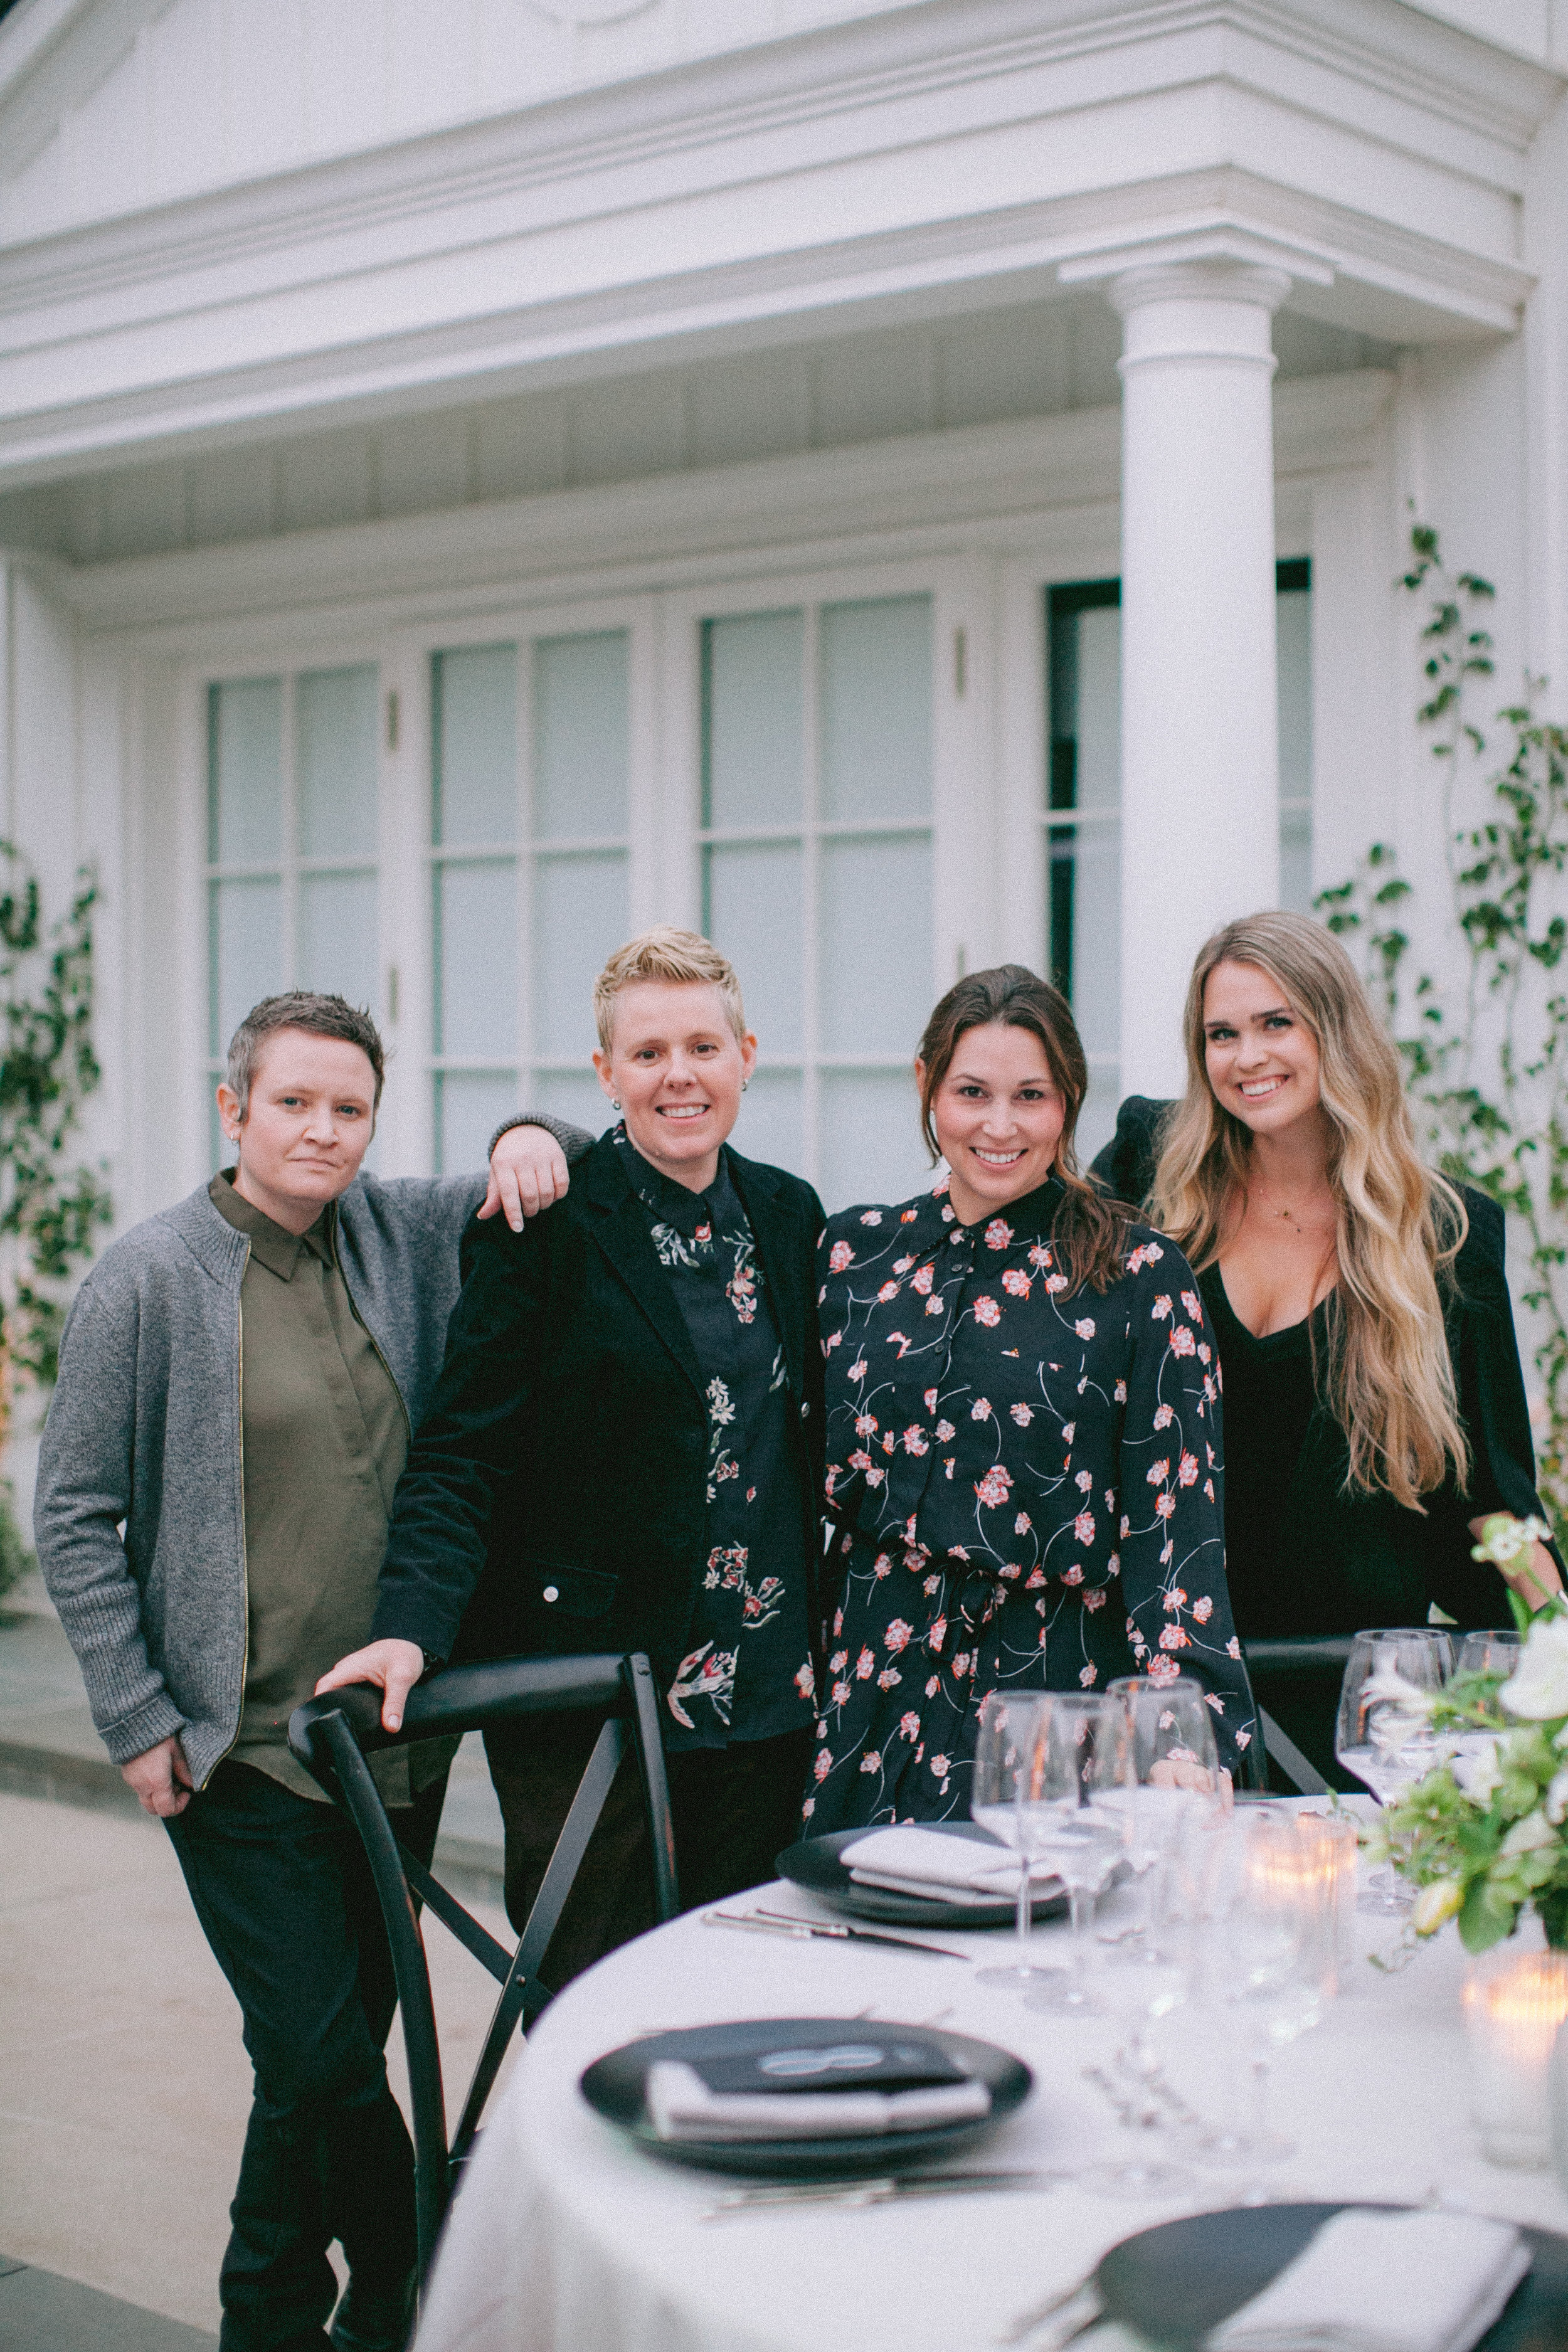 Left to right- Freddie & Bree of Rockrose Floral, Lindsey & Niki of Magnolia Event Design